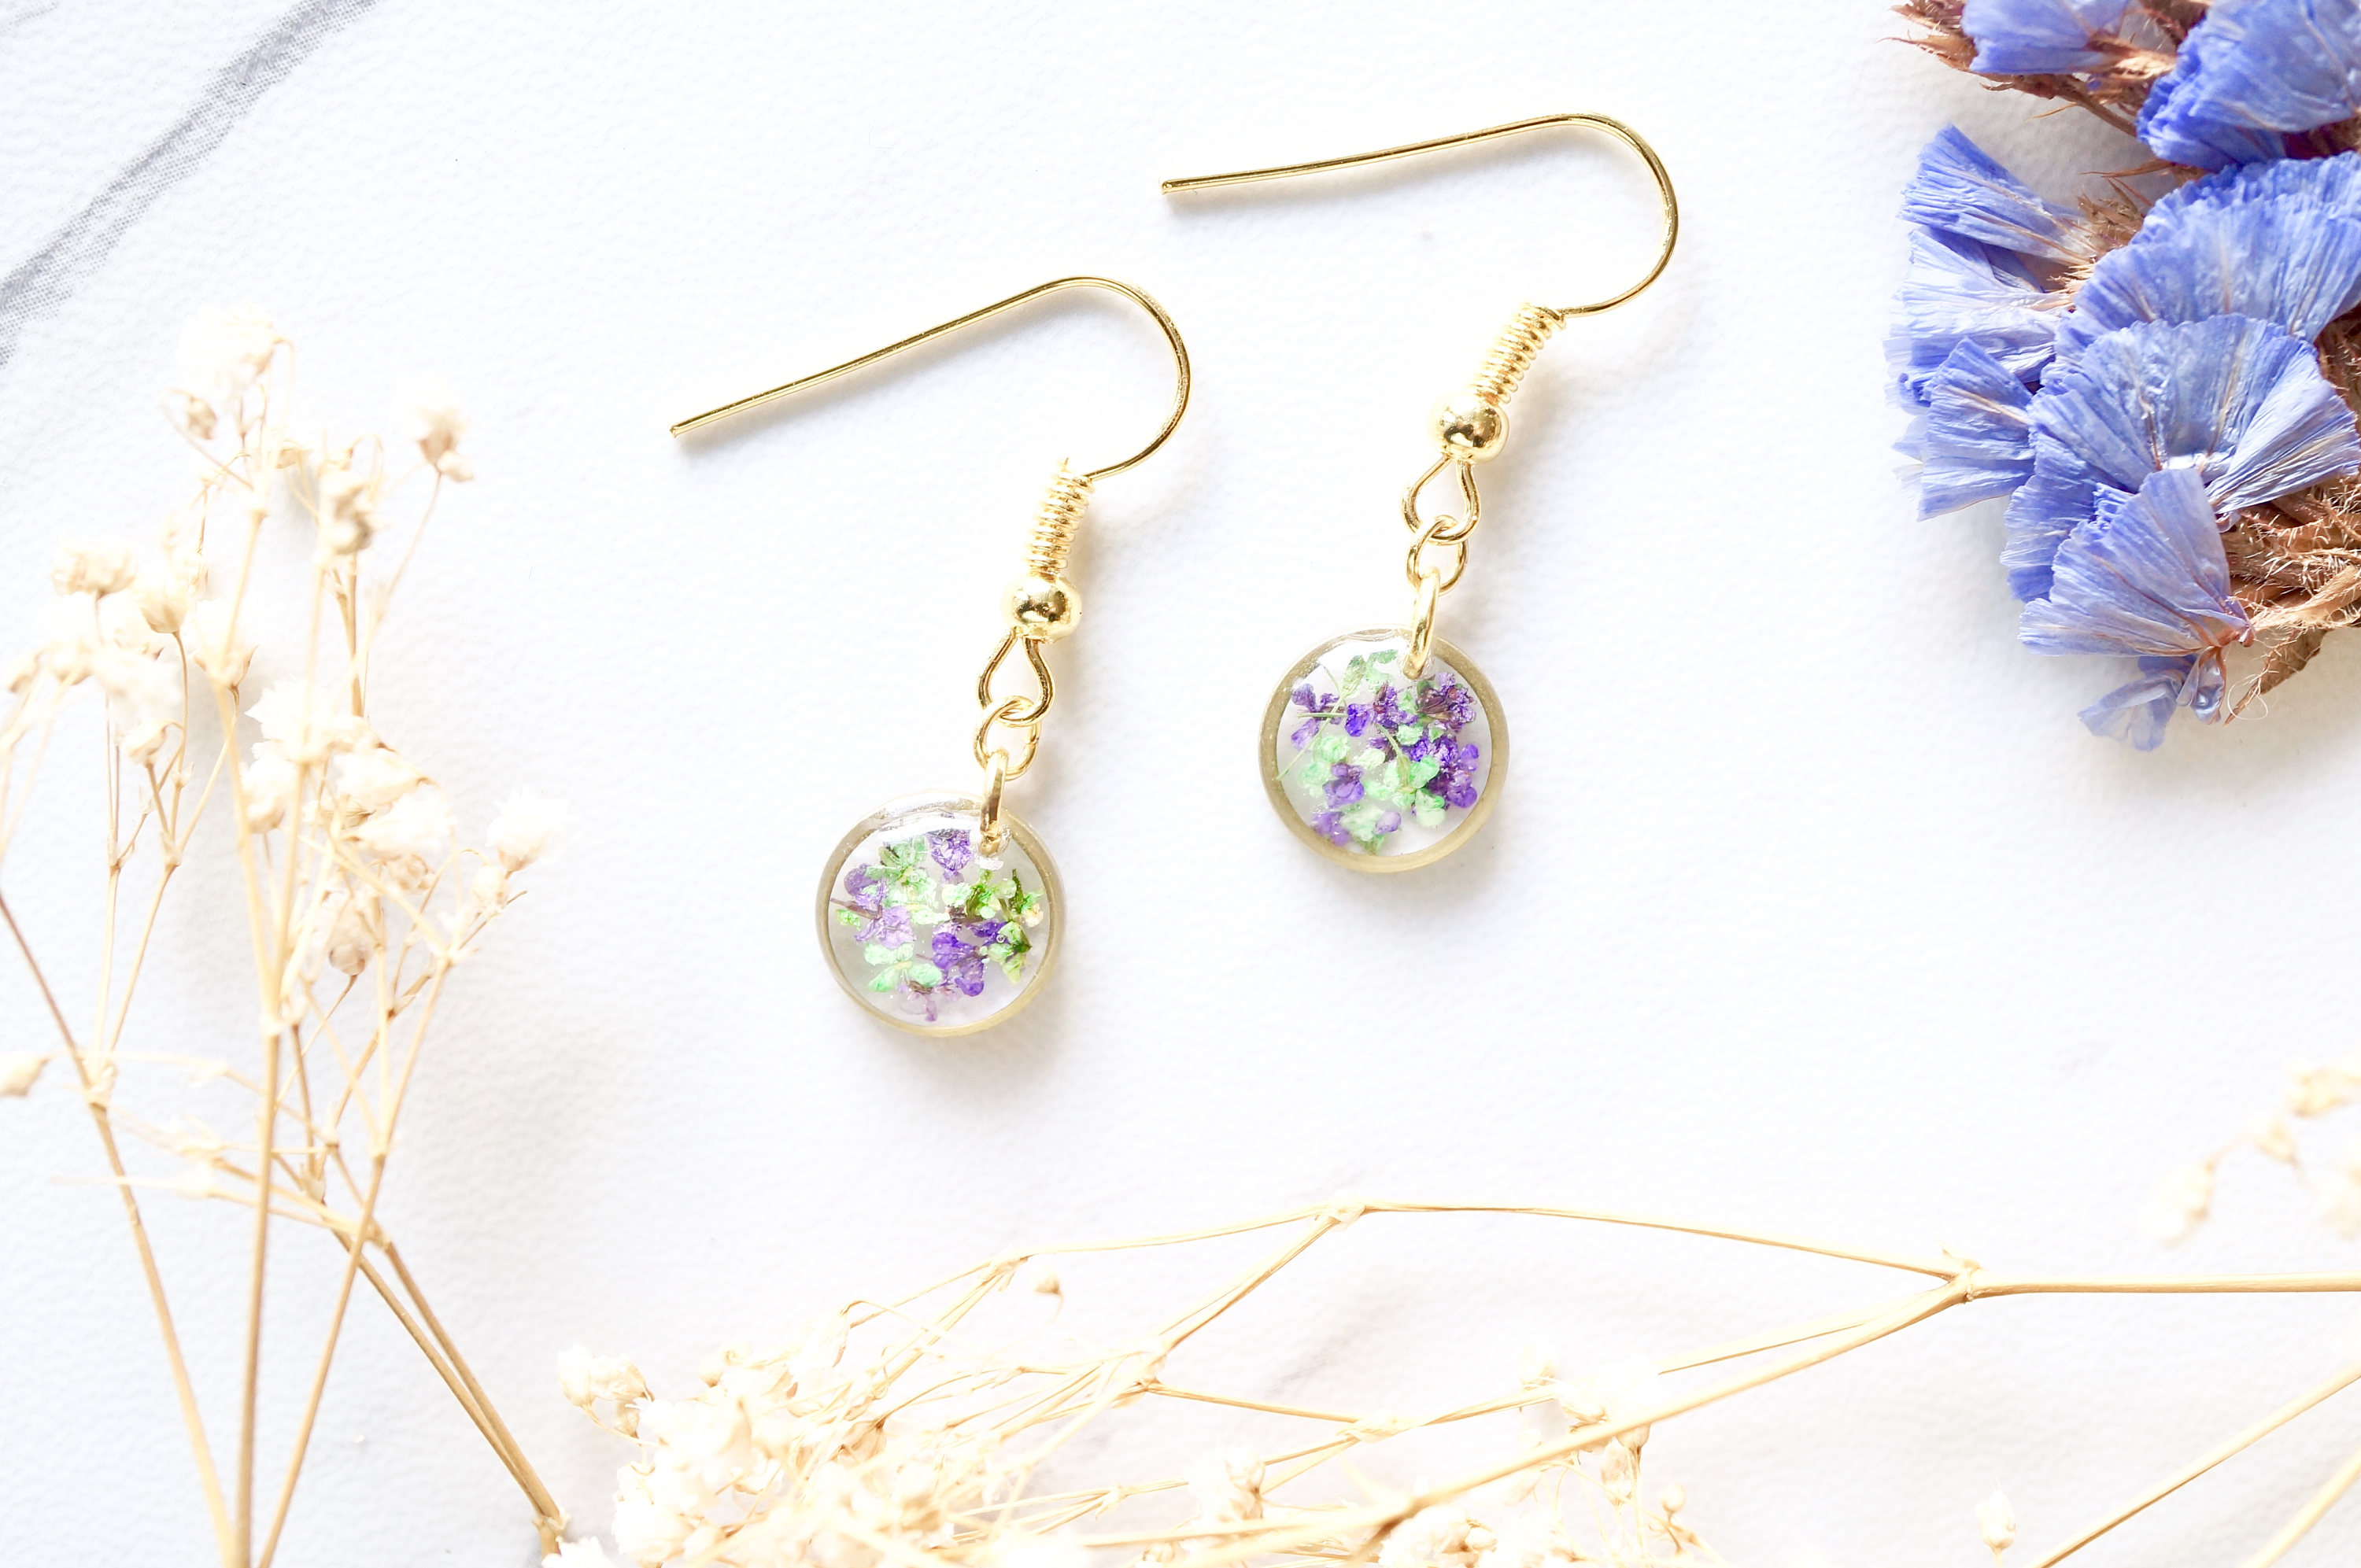 e442ddbf1 Real Dried Flowers and Resin Earrings, Gold Circle Drops in Purple Green